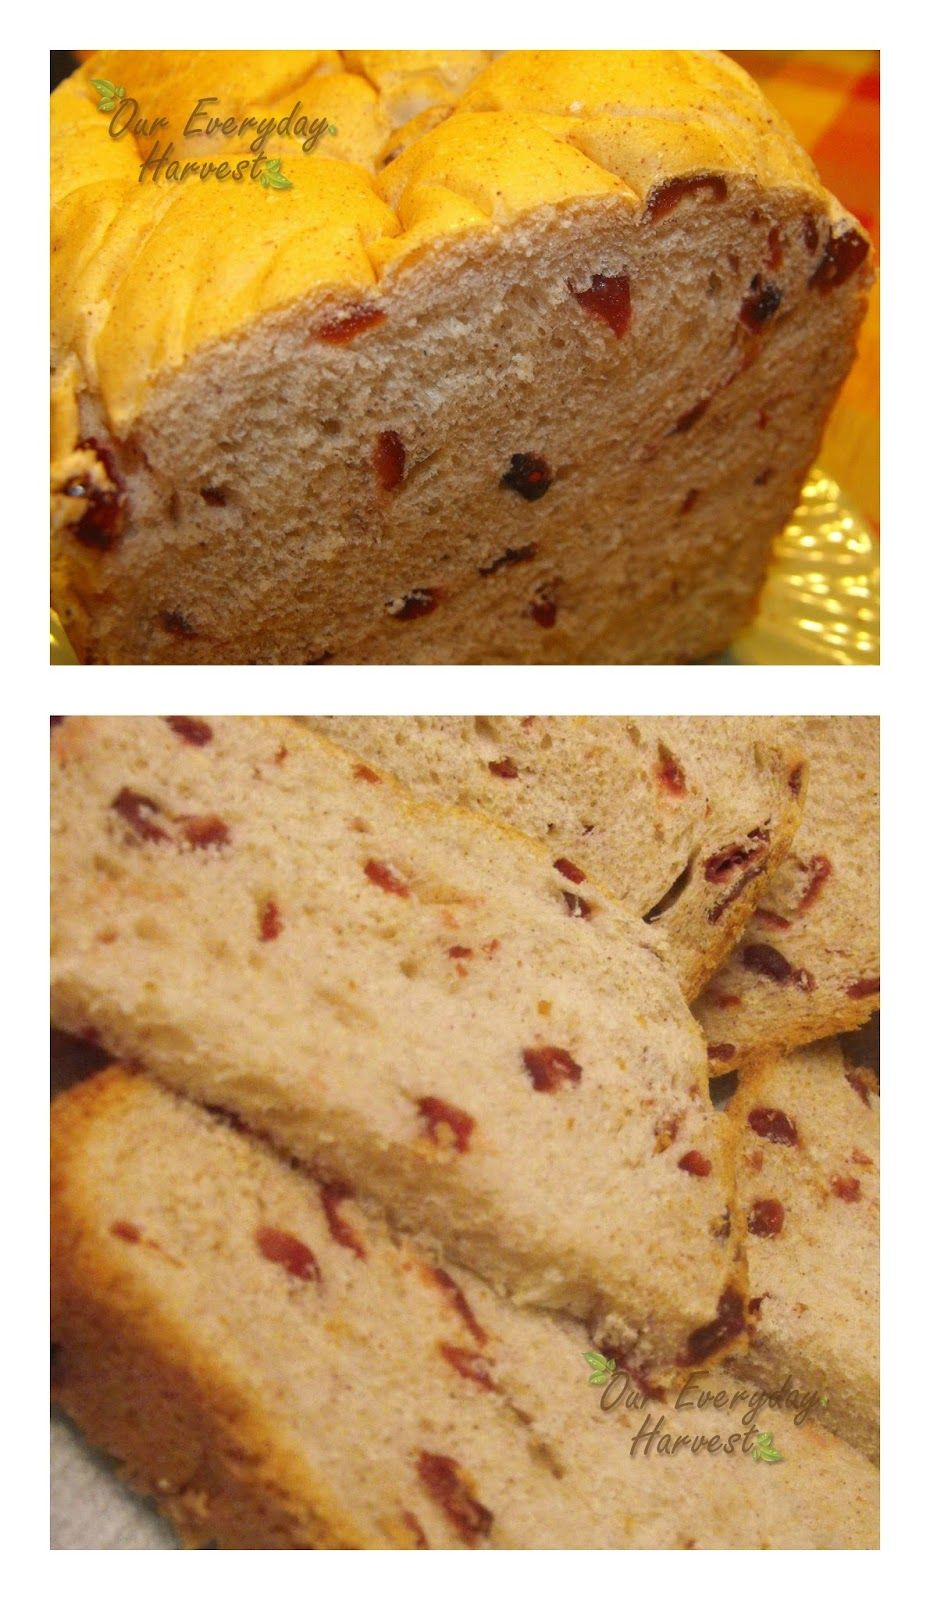 Cinnamon Craisin Bread {Bread Maker Recipe} | Our Everyday Harvest - Family Blog, Reviews, Giveaways, Frugal Tips, Recipes...